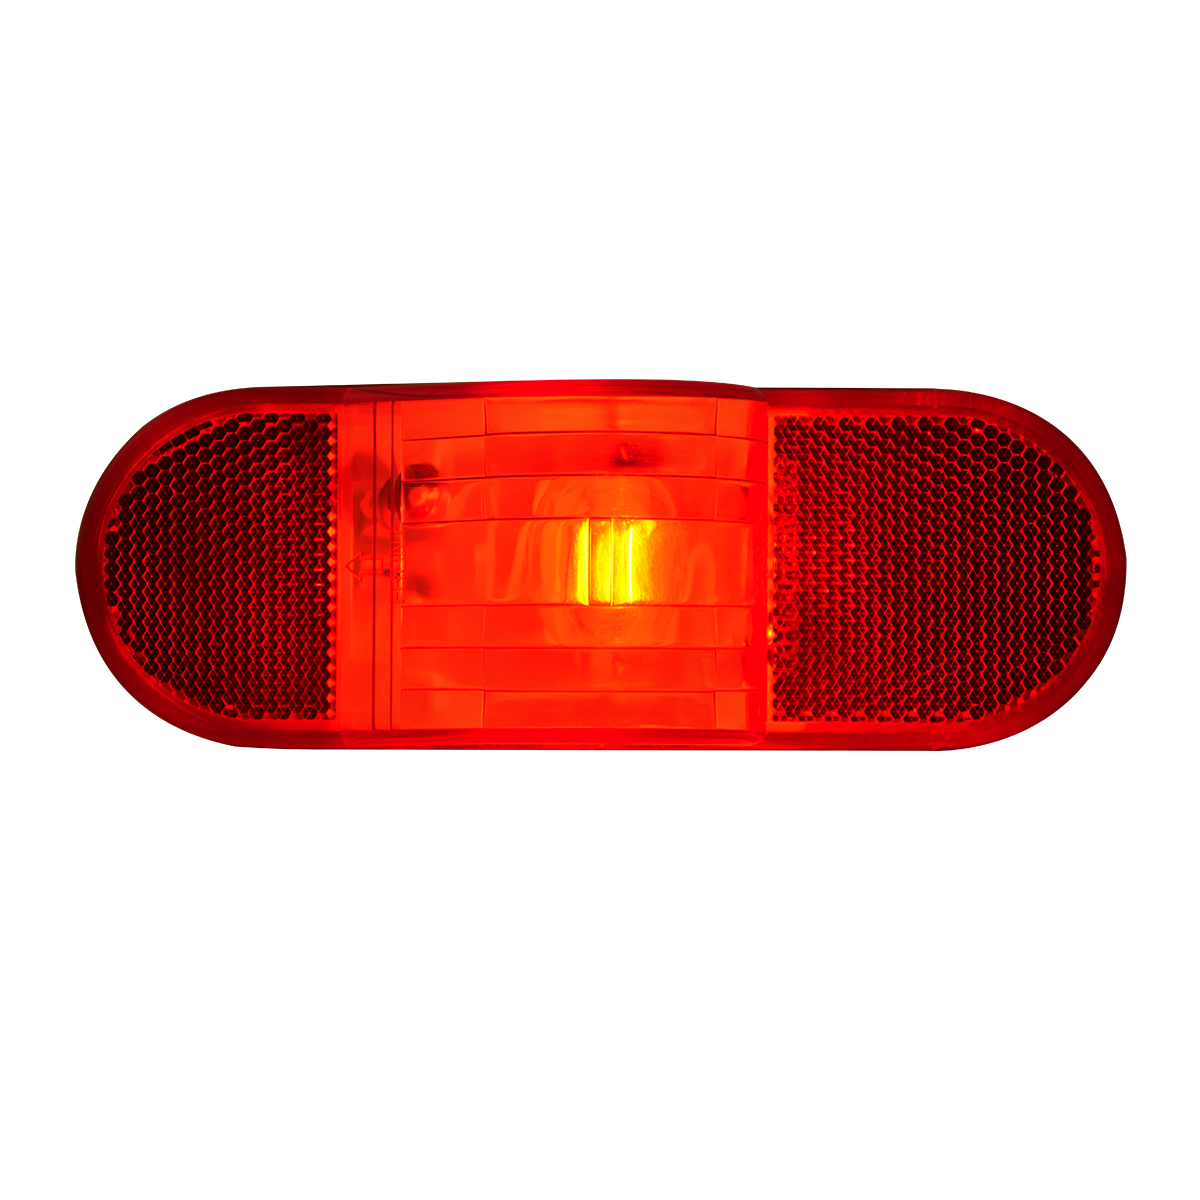 #80704 Oval Side Turn and Marker Light with Reflector - Red Lens Only